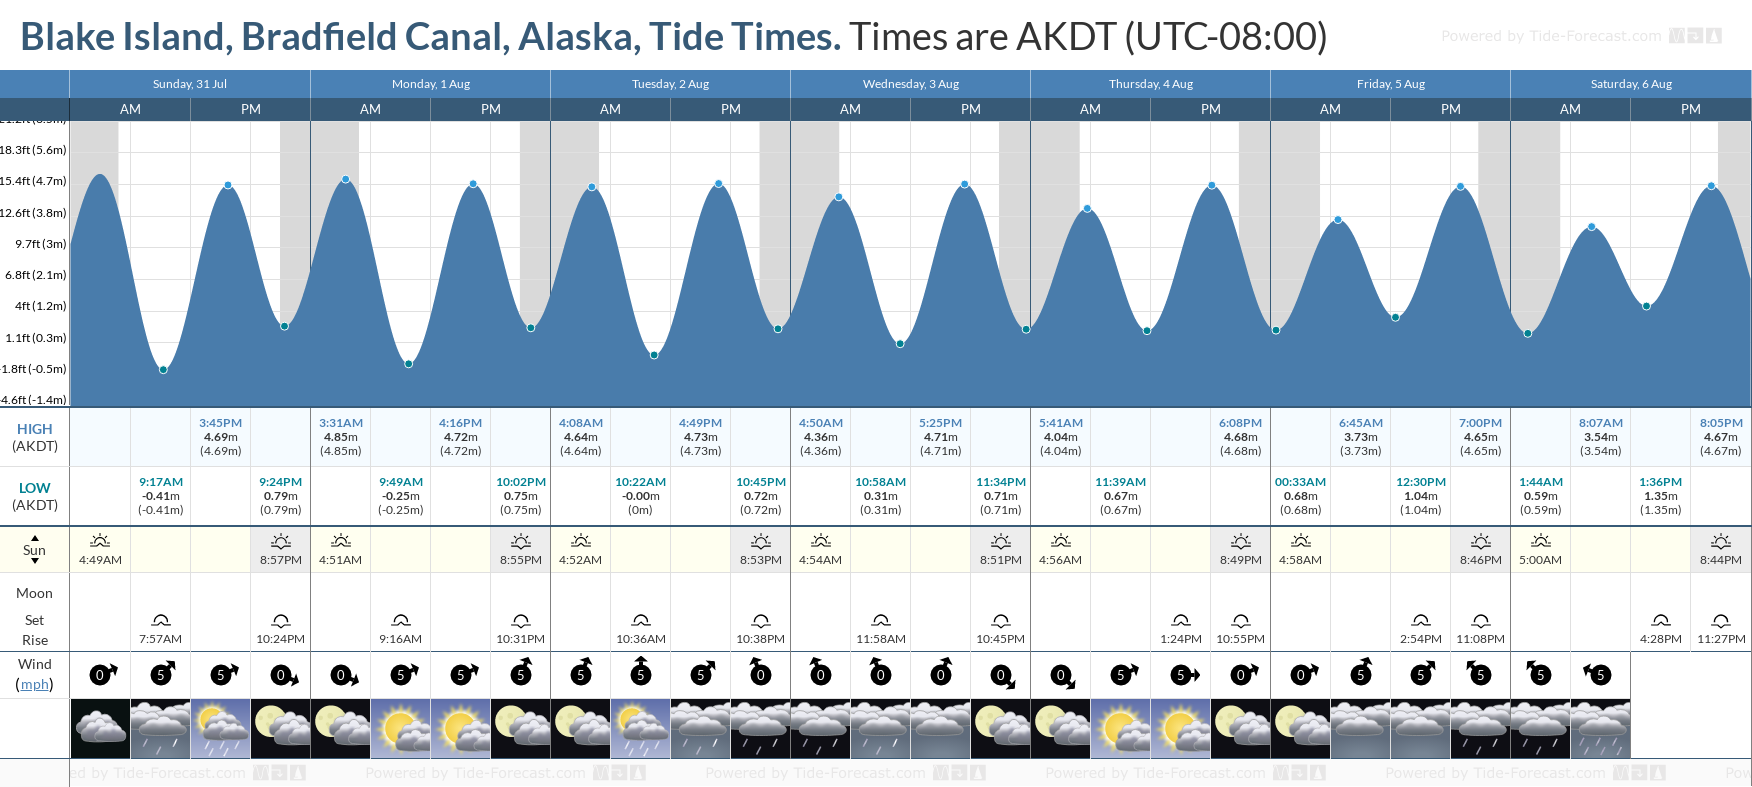 Blake Island, Bradfield Canal, Alaska Tide Chart including high and low tide tide times for the next 7 days